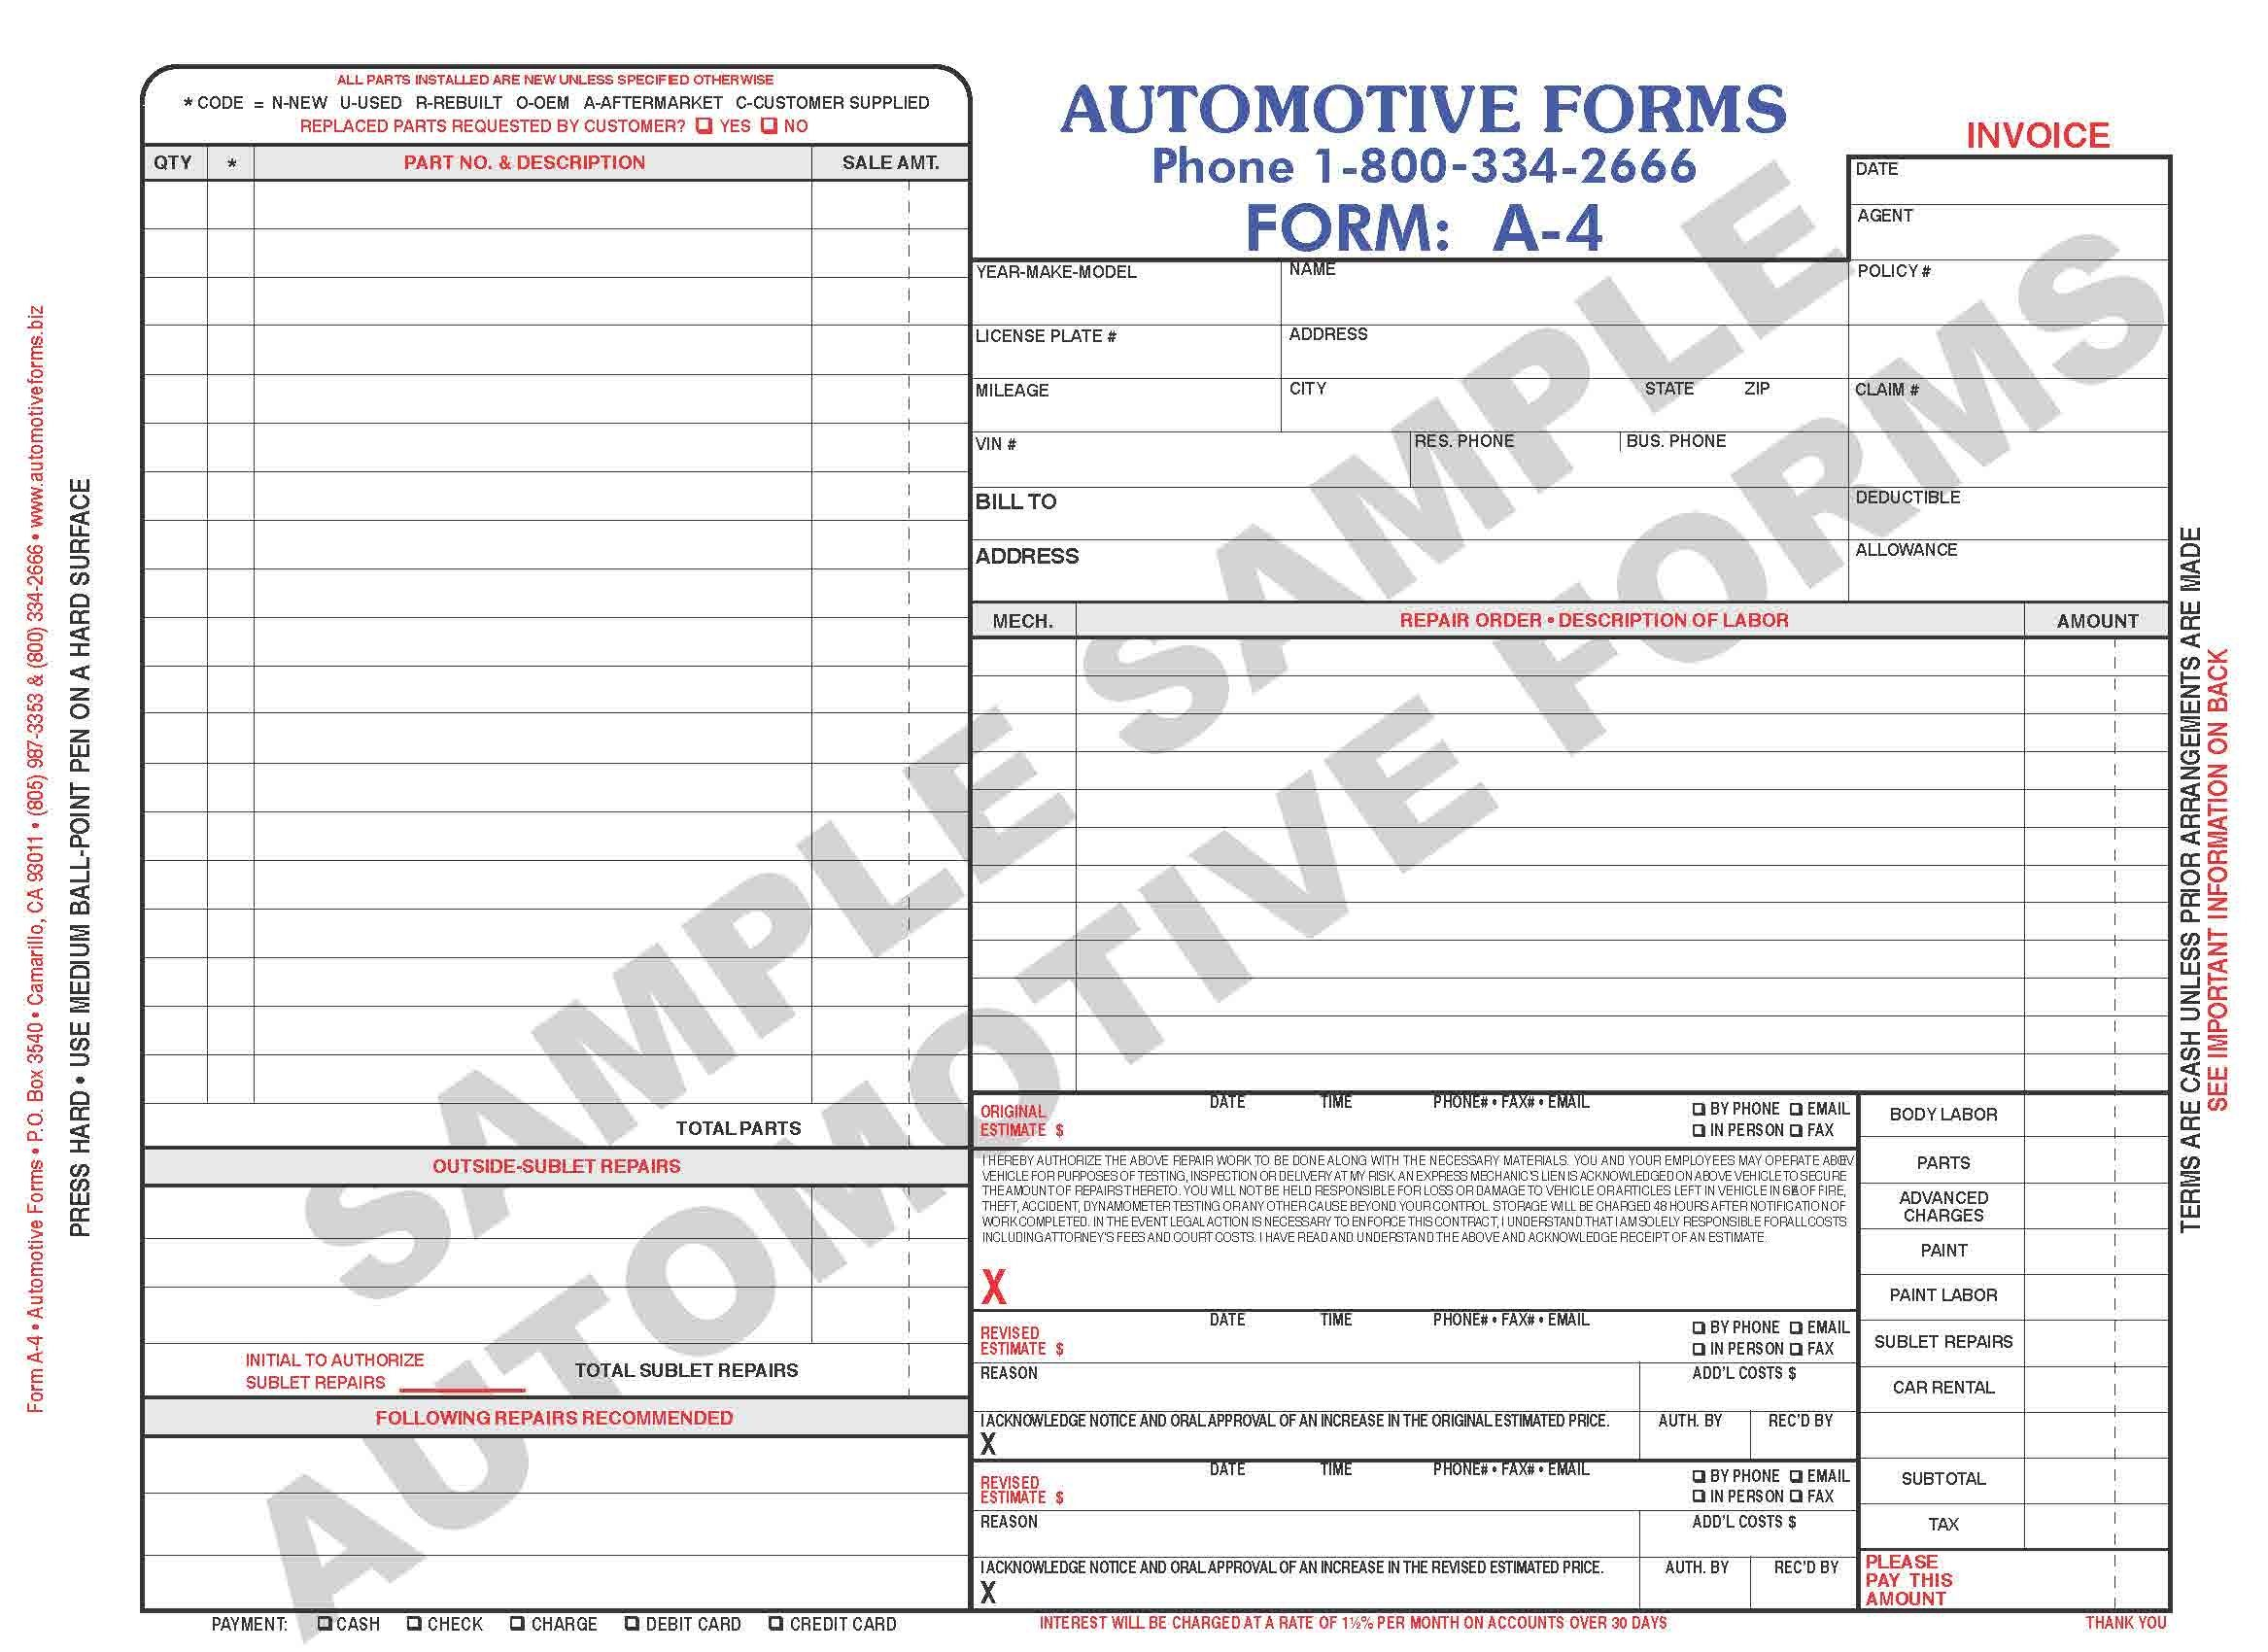 Body Shop Invoice Body Shop Invoice Template Invoice Pinterest - Commercial invoice template excel free download online vapor store